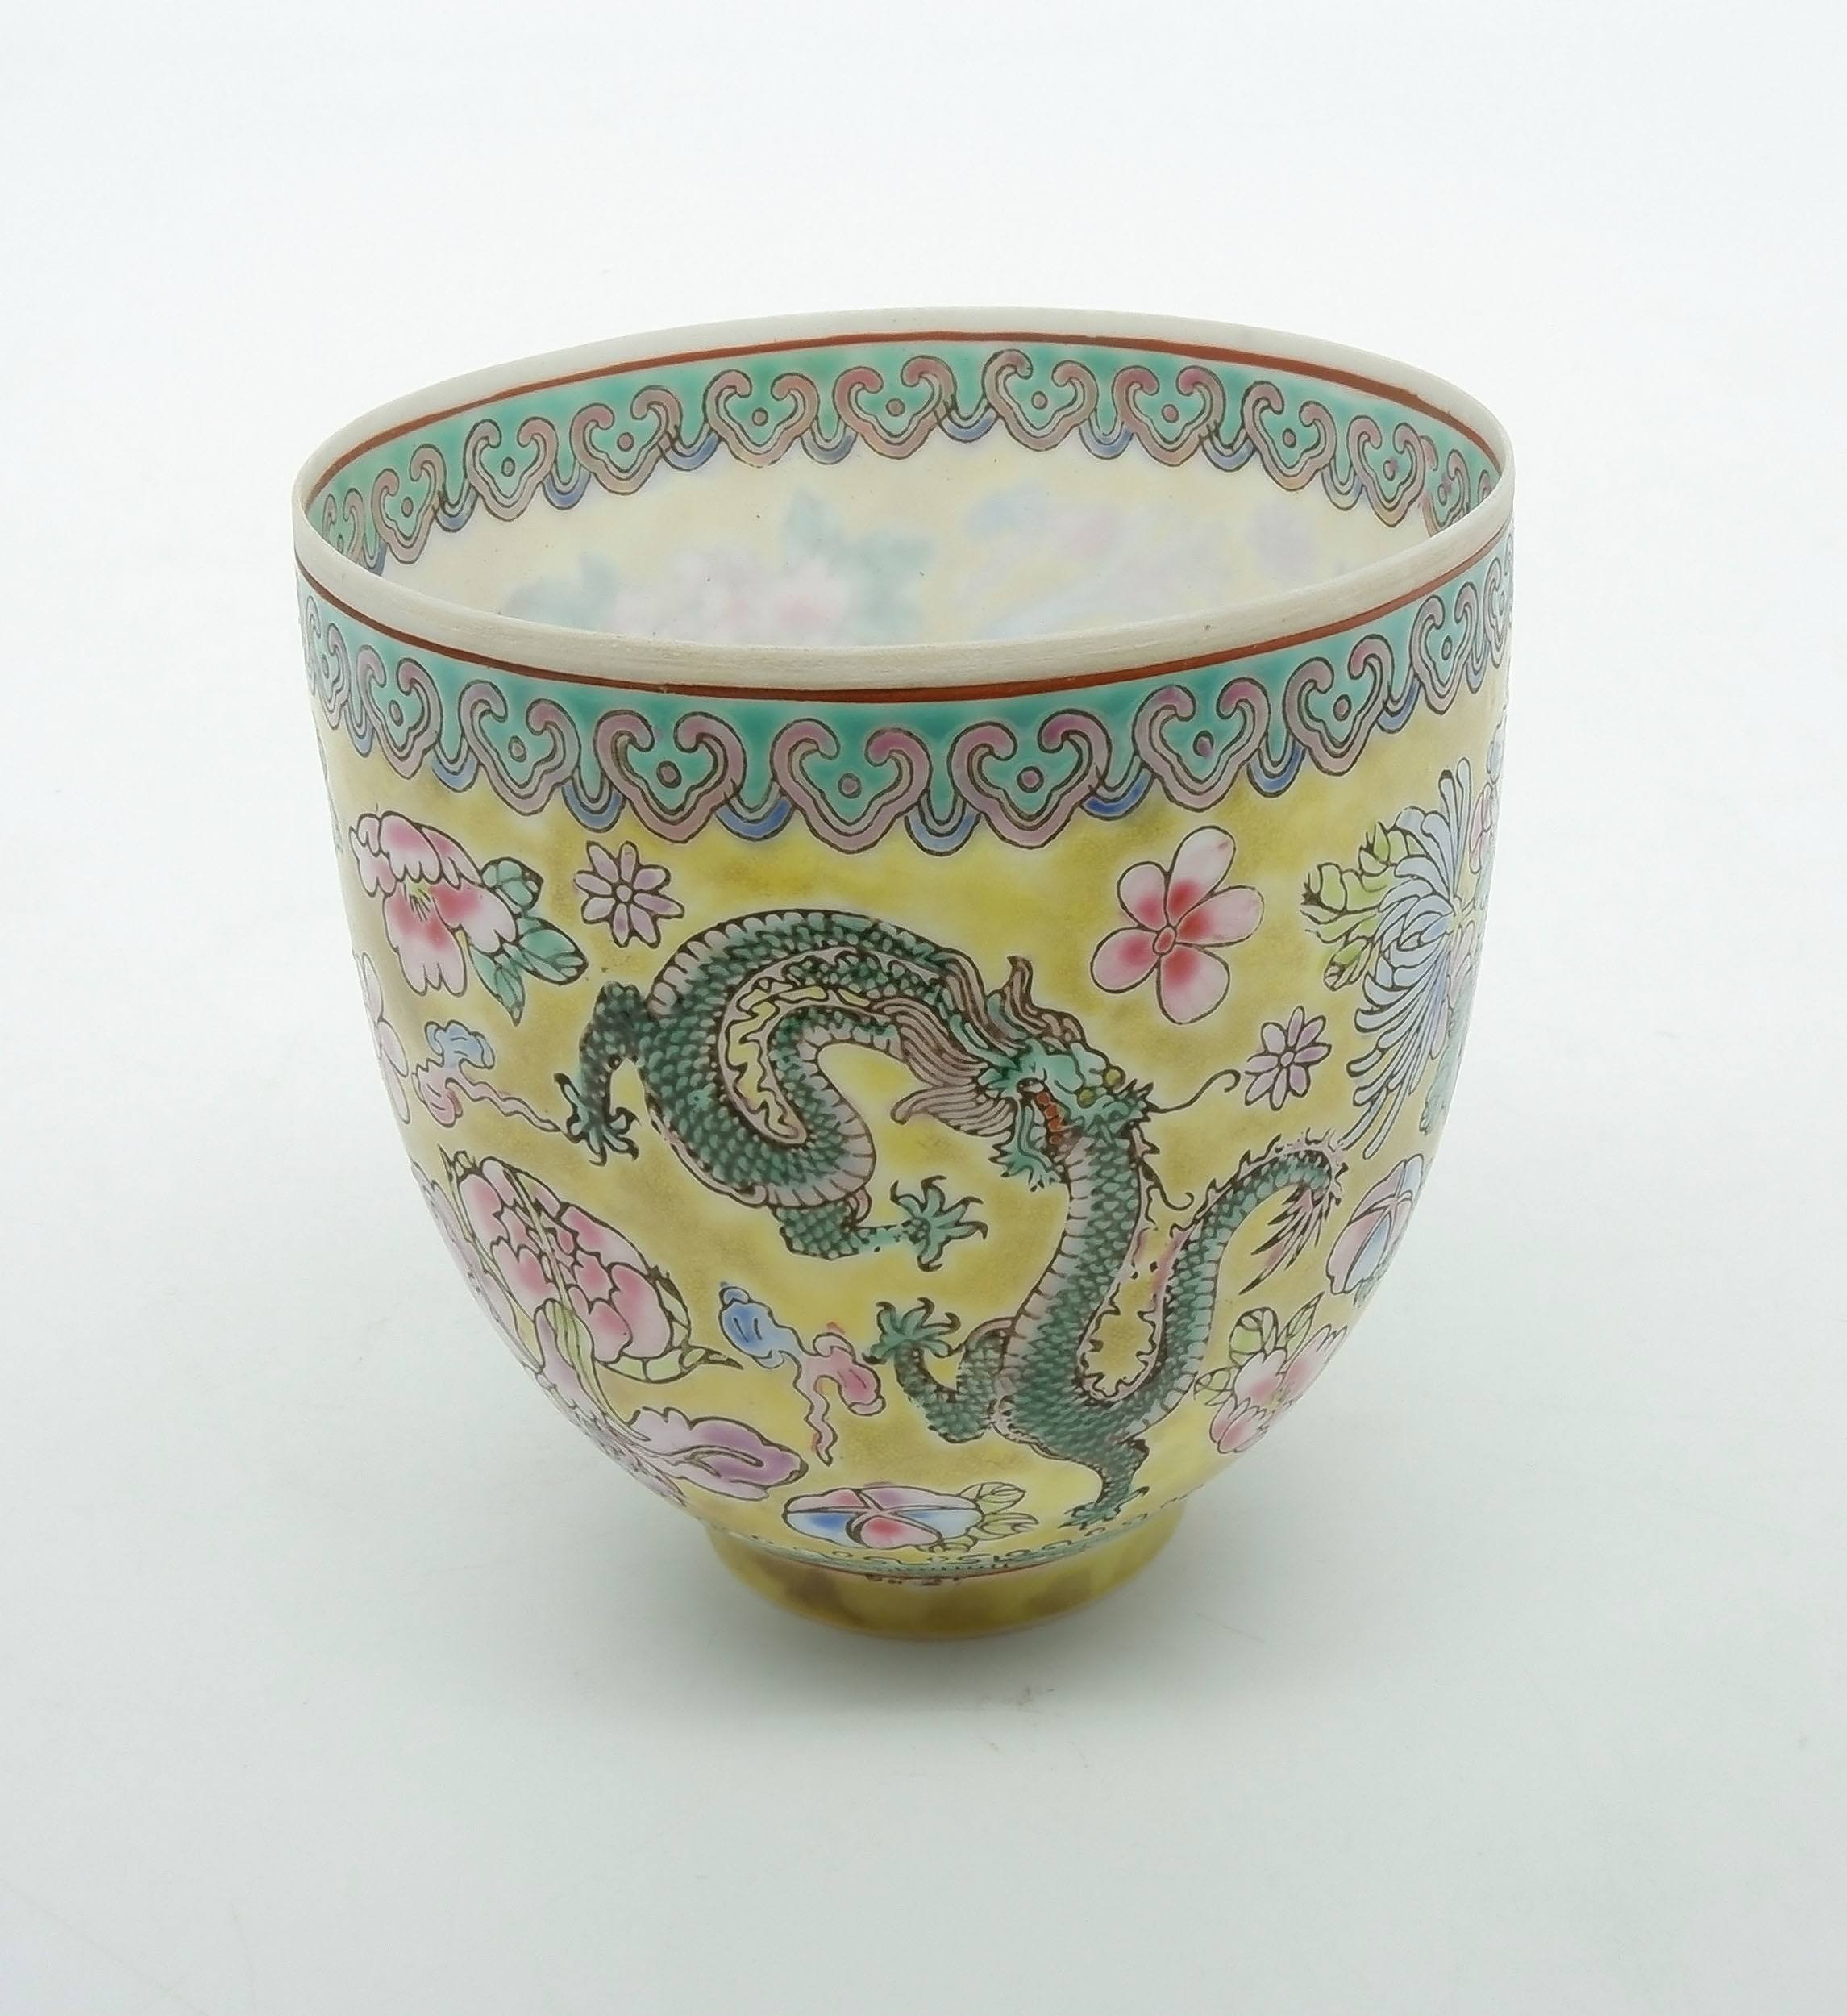 'Chinese Eggshell Porcelain Famille Rose Cup, Late 20th Century'